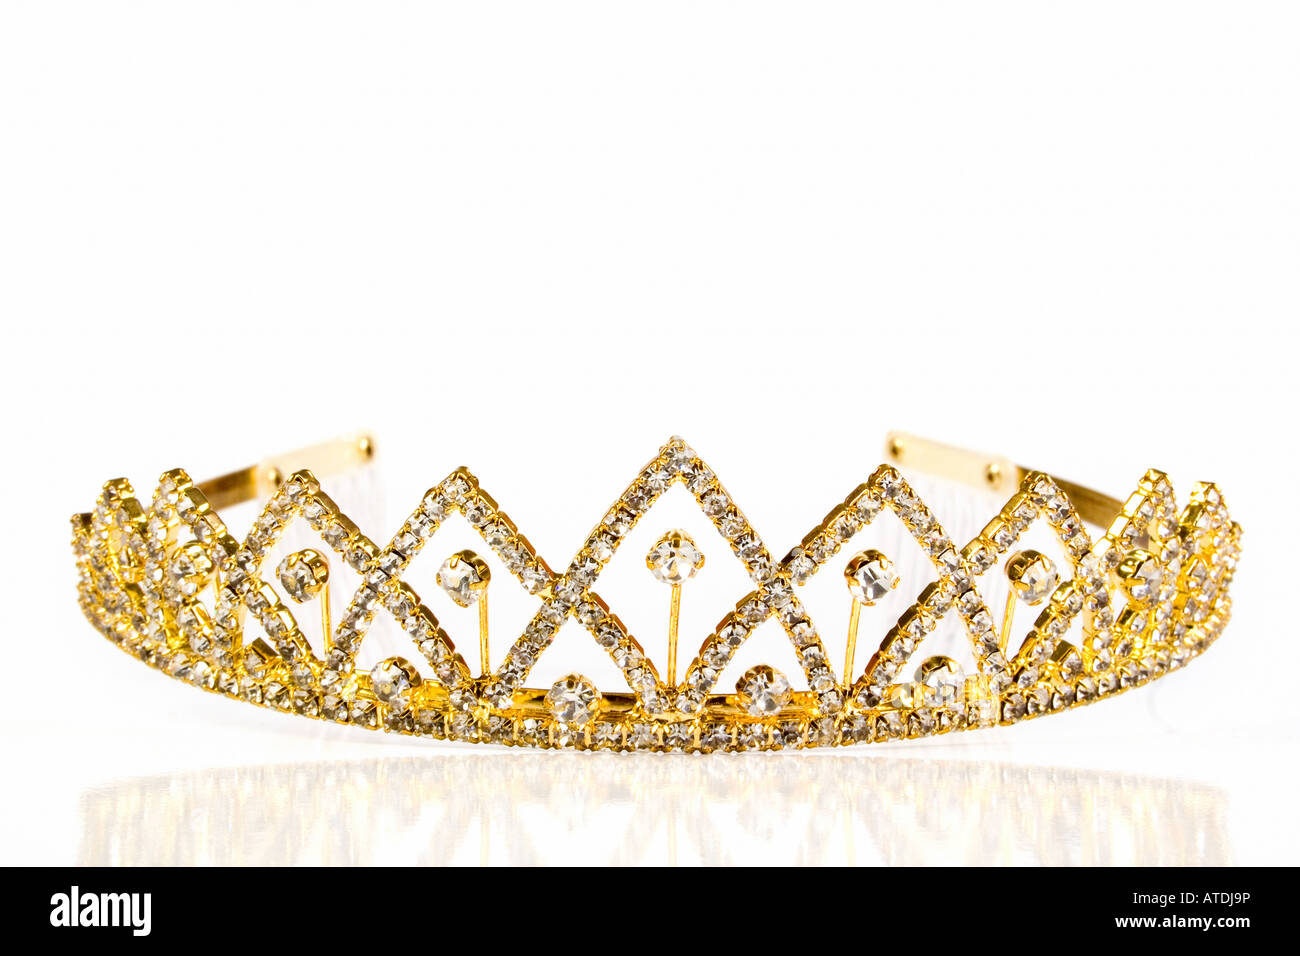 Queen crown - Stock Image